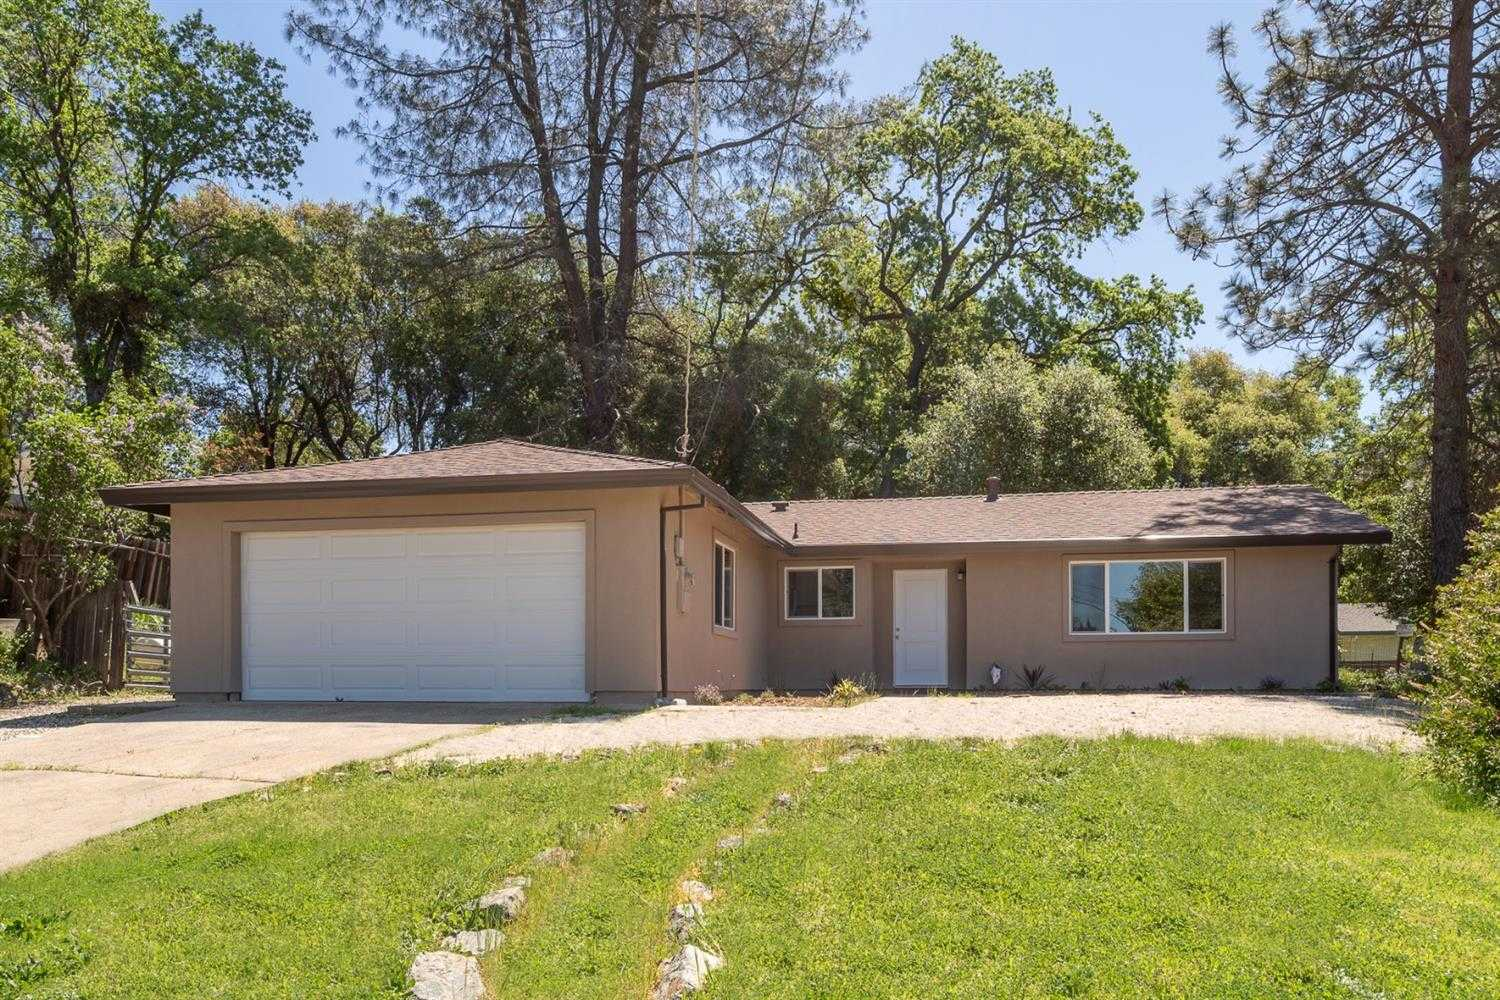 $369,900 - 3Br/2Ba -  for Sale in Deer Park, Diamond Springs